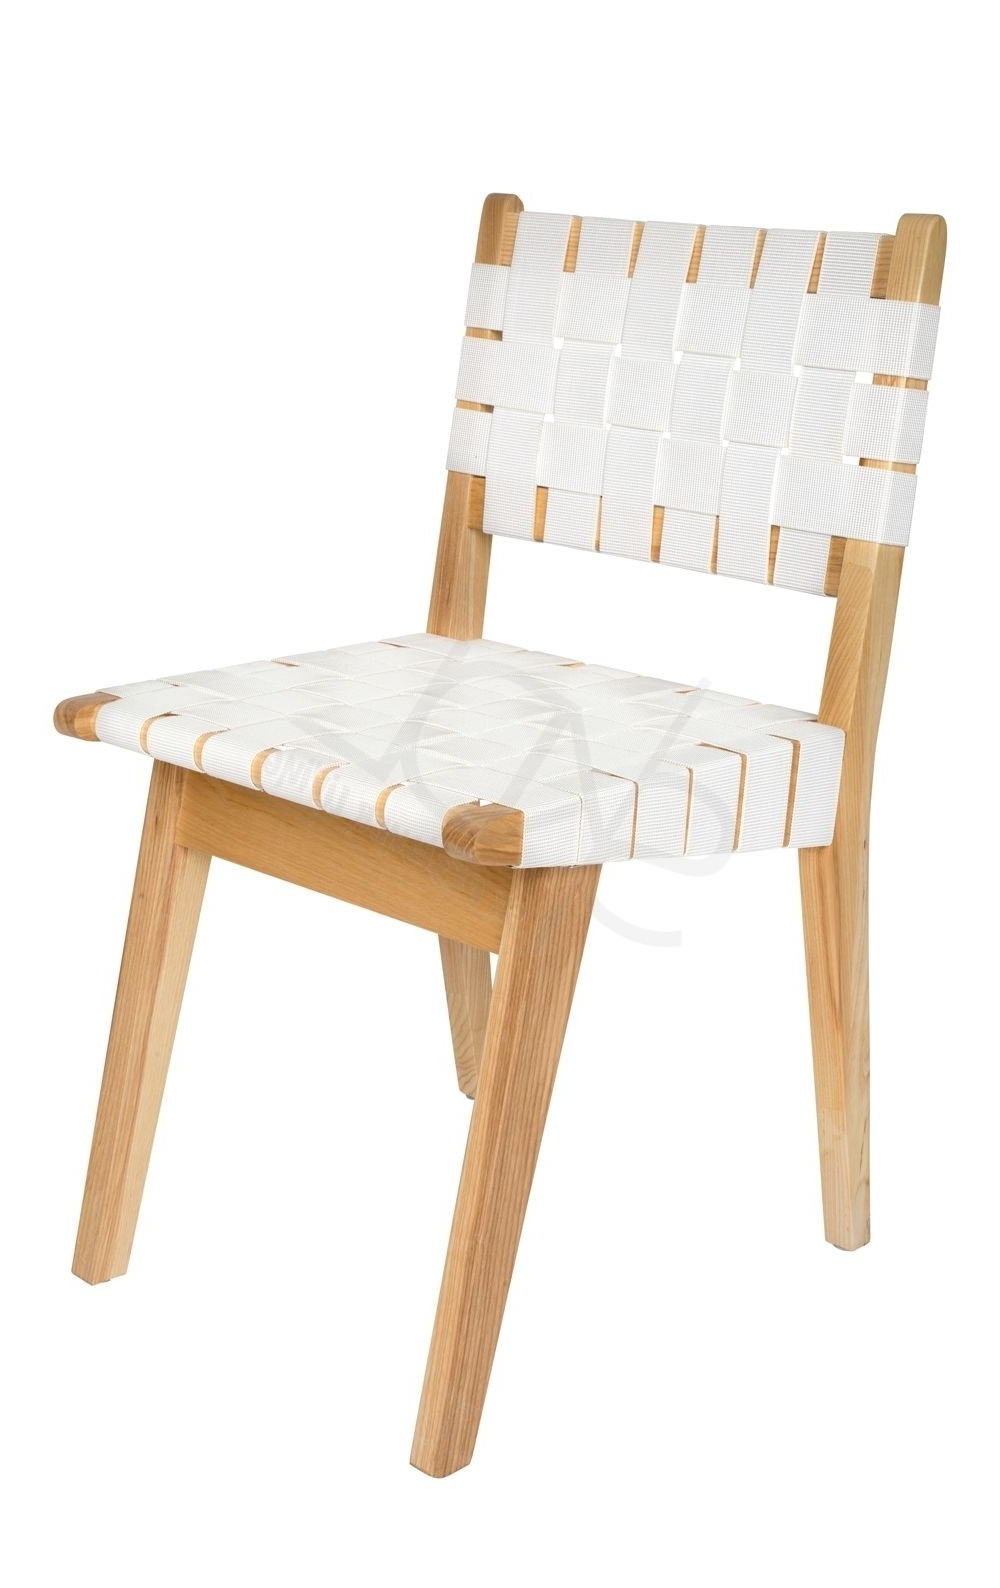 Replica Jens Risom Dining Chair Inside Widely Used Perth White Dining Chairs (View 4 of 25)